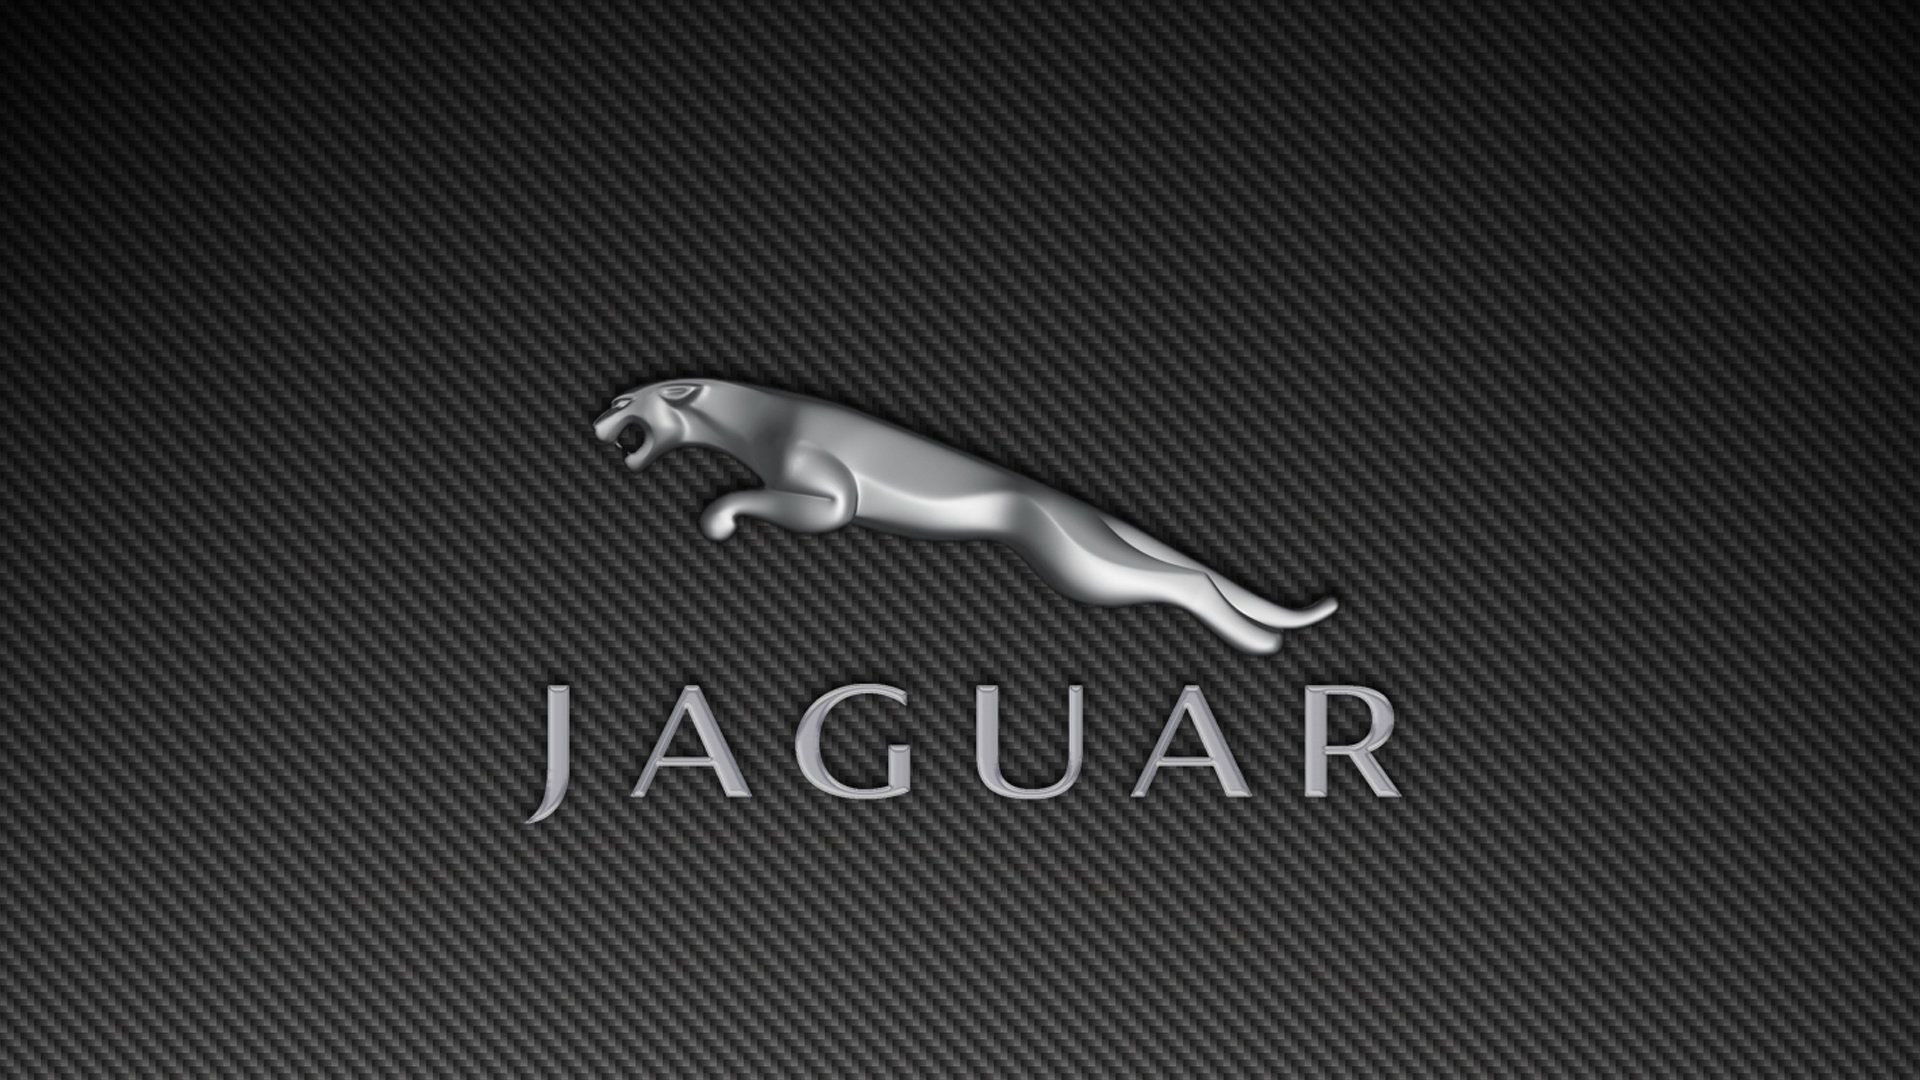 Jaguar Logo HD Wallpaper 1080p Wallpaper | Jaguar ...